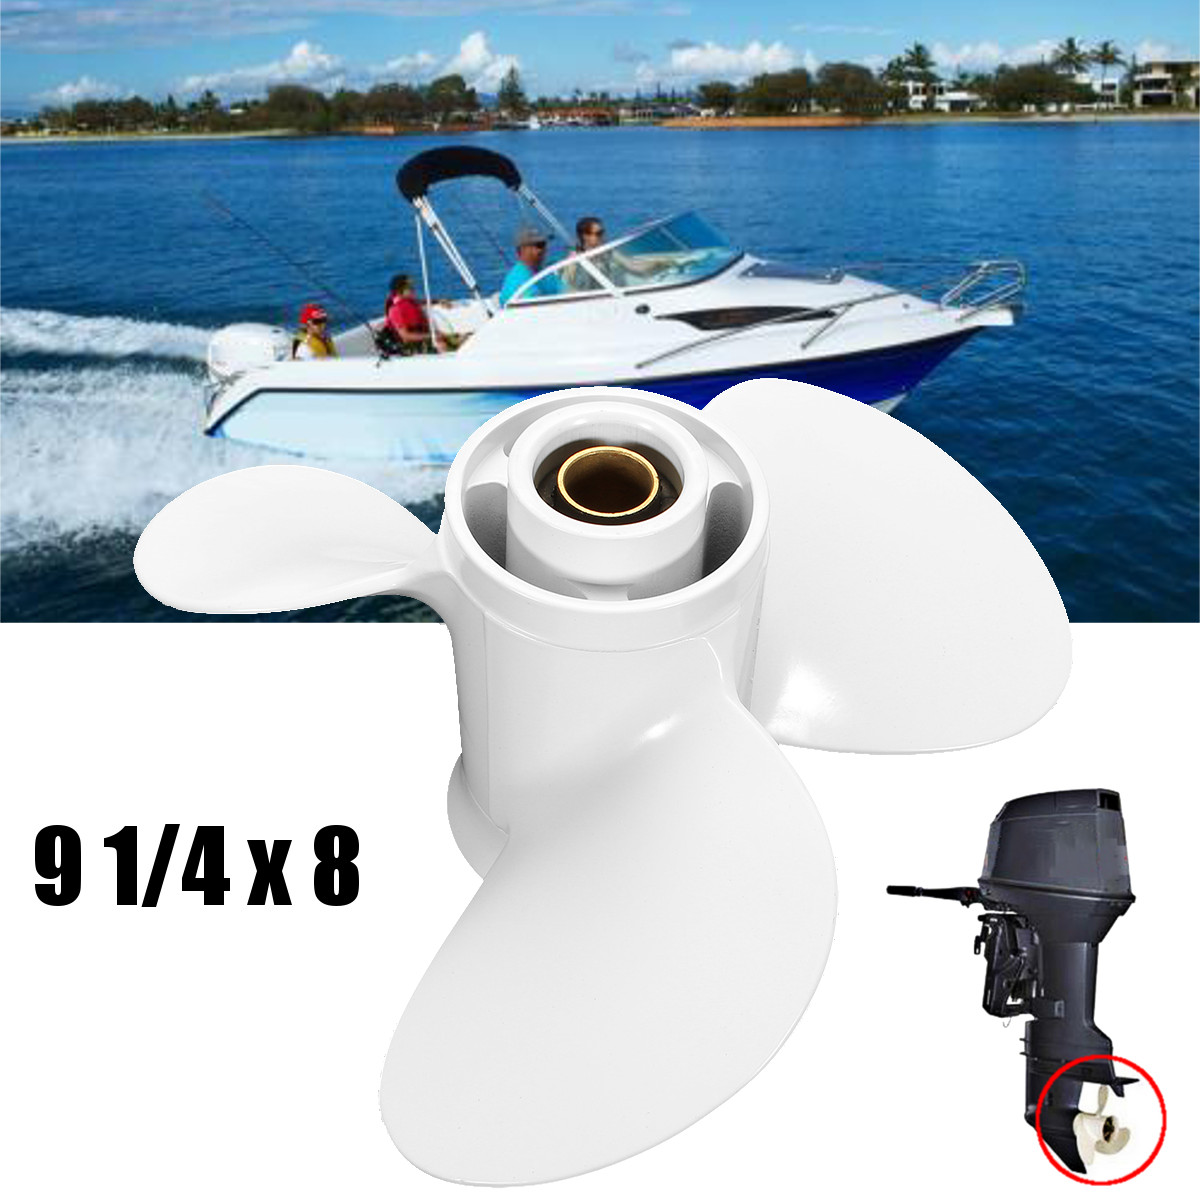 9.9-15 HP 20HP Prop 3 Blade Aluminum Propeller Quality for Yamaha White